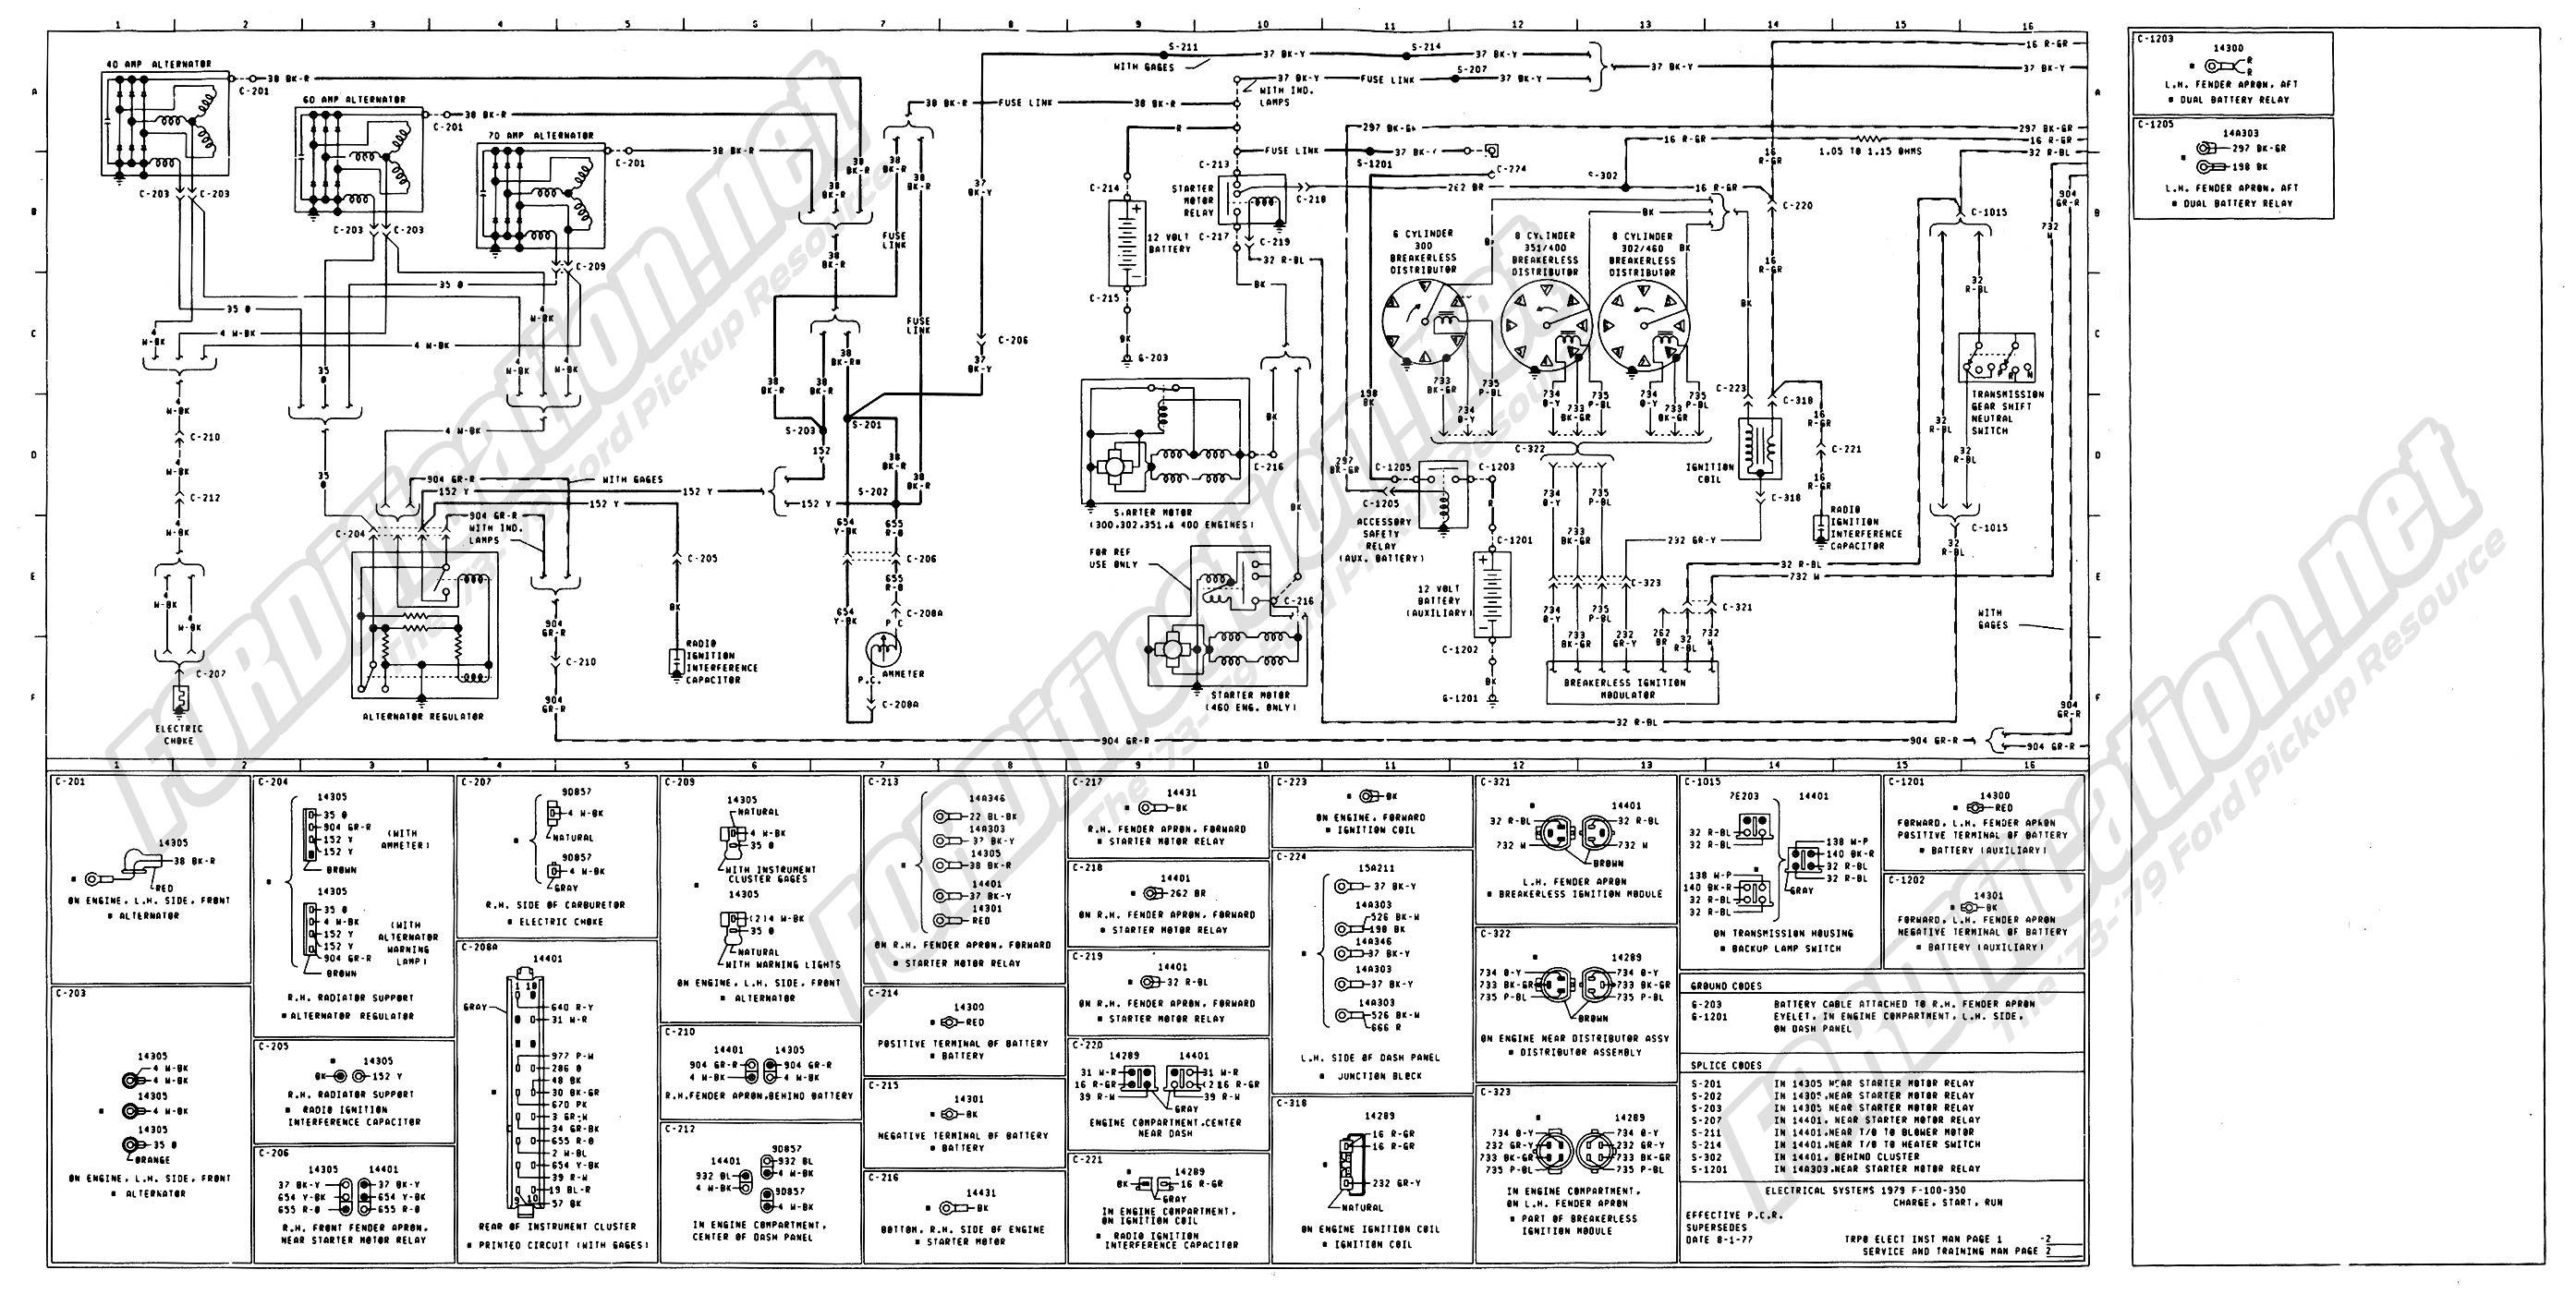 [DIAGRAM_3NM]  1996 Ford F150 Fuel Pump Wiring Diagram | Wiring Library | 1996 Ford F150 Radio Wiring Diagram |  | 57.icse-cloud09.me